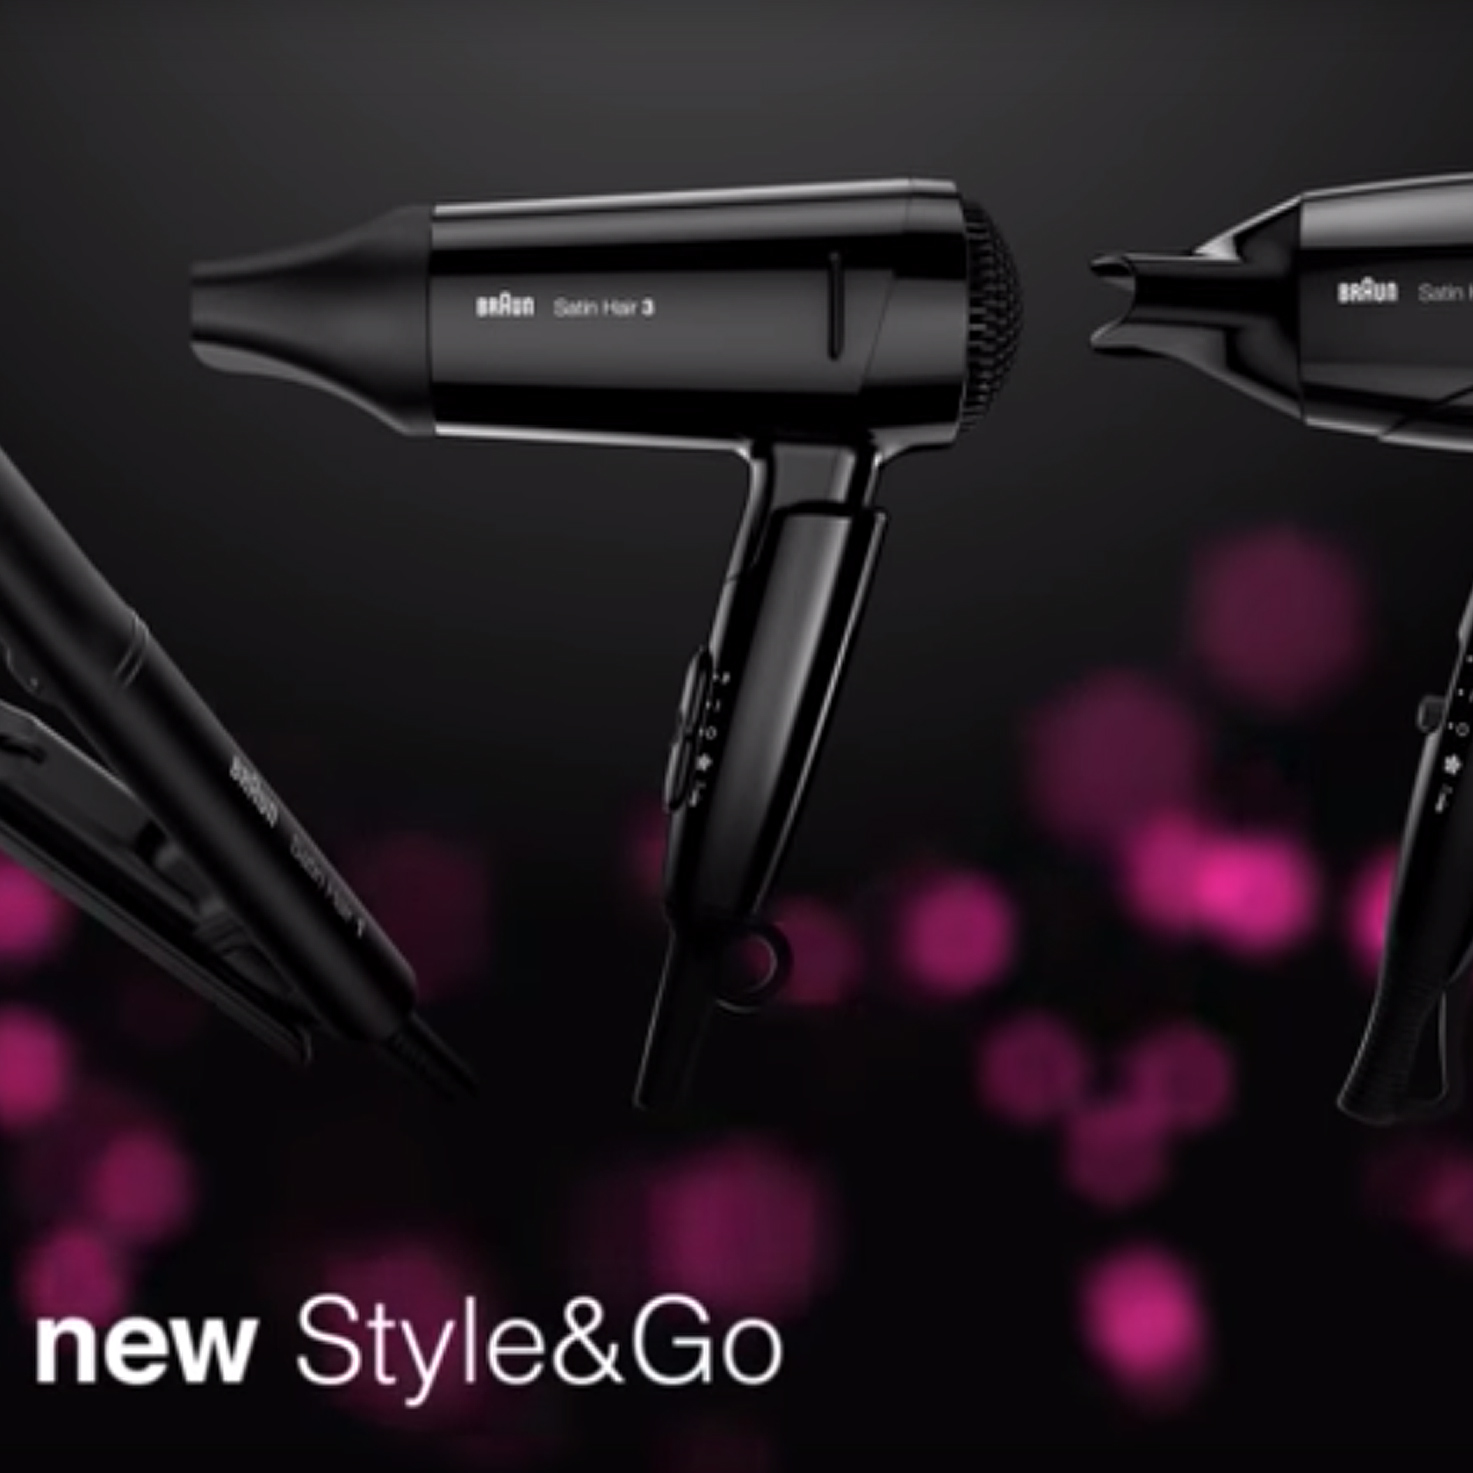 PDP - Gallery - braun-satin-hair-style-go-styler-and-dryers-product-video